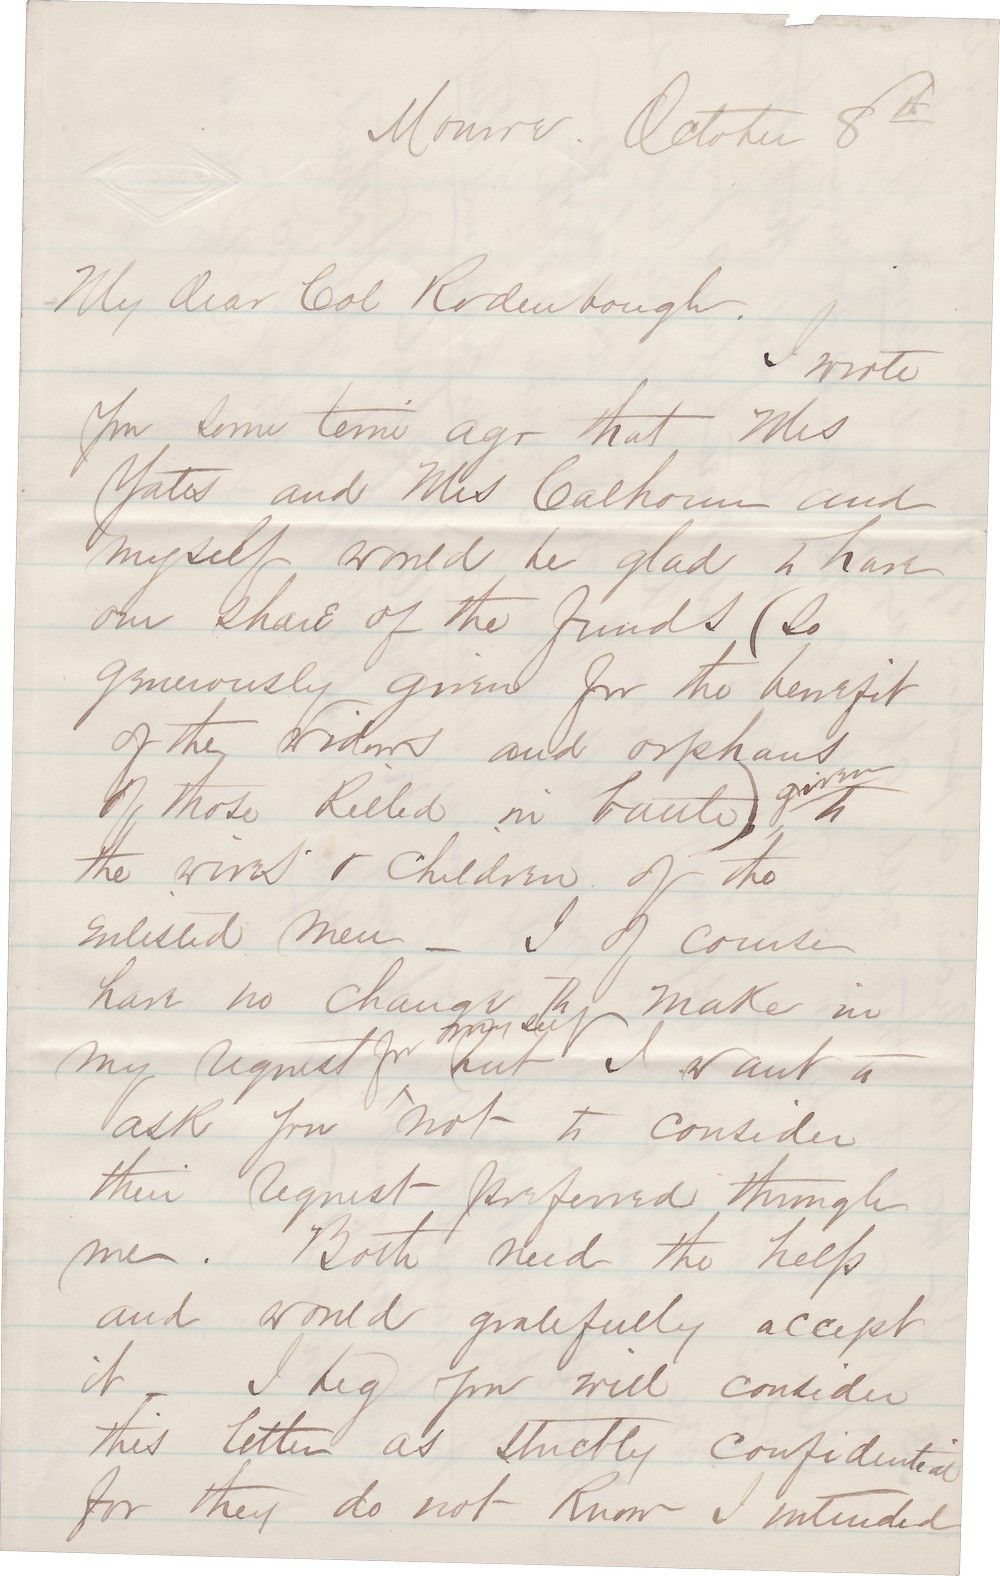 Libbie Custer Makes a Secret Plea to Aid the Widows of Captain Yates, Lt. Calhoun, and Enlisted Men